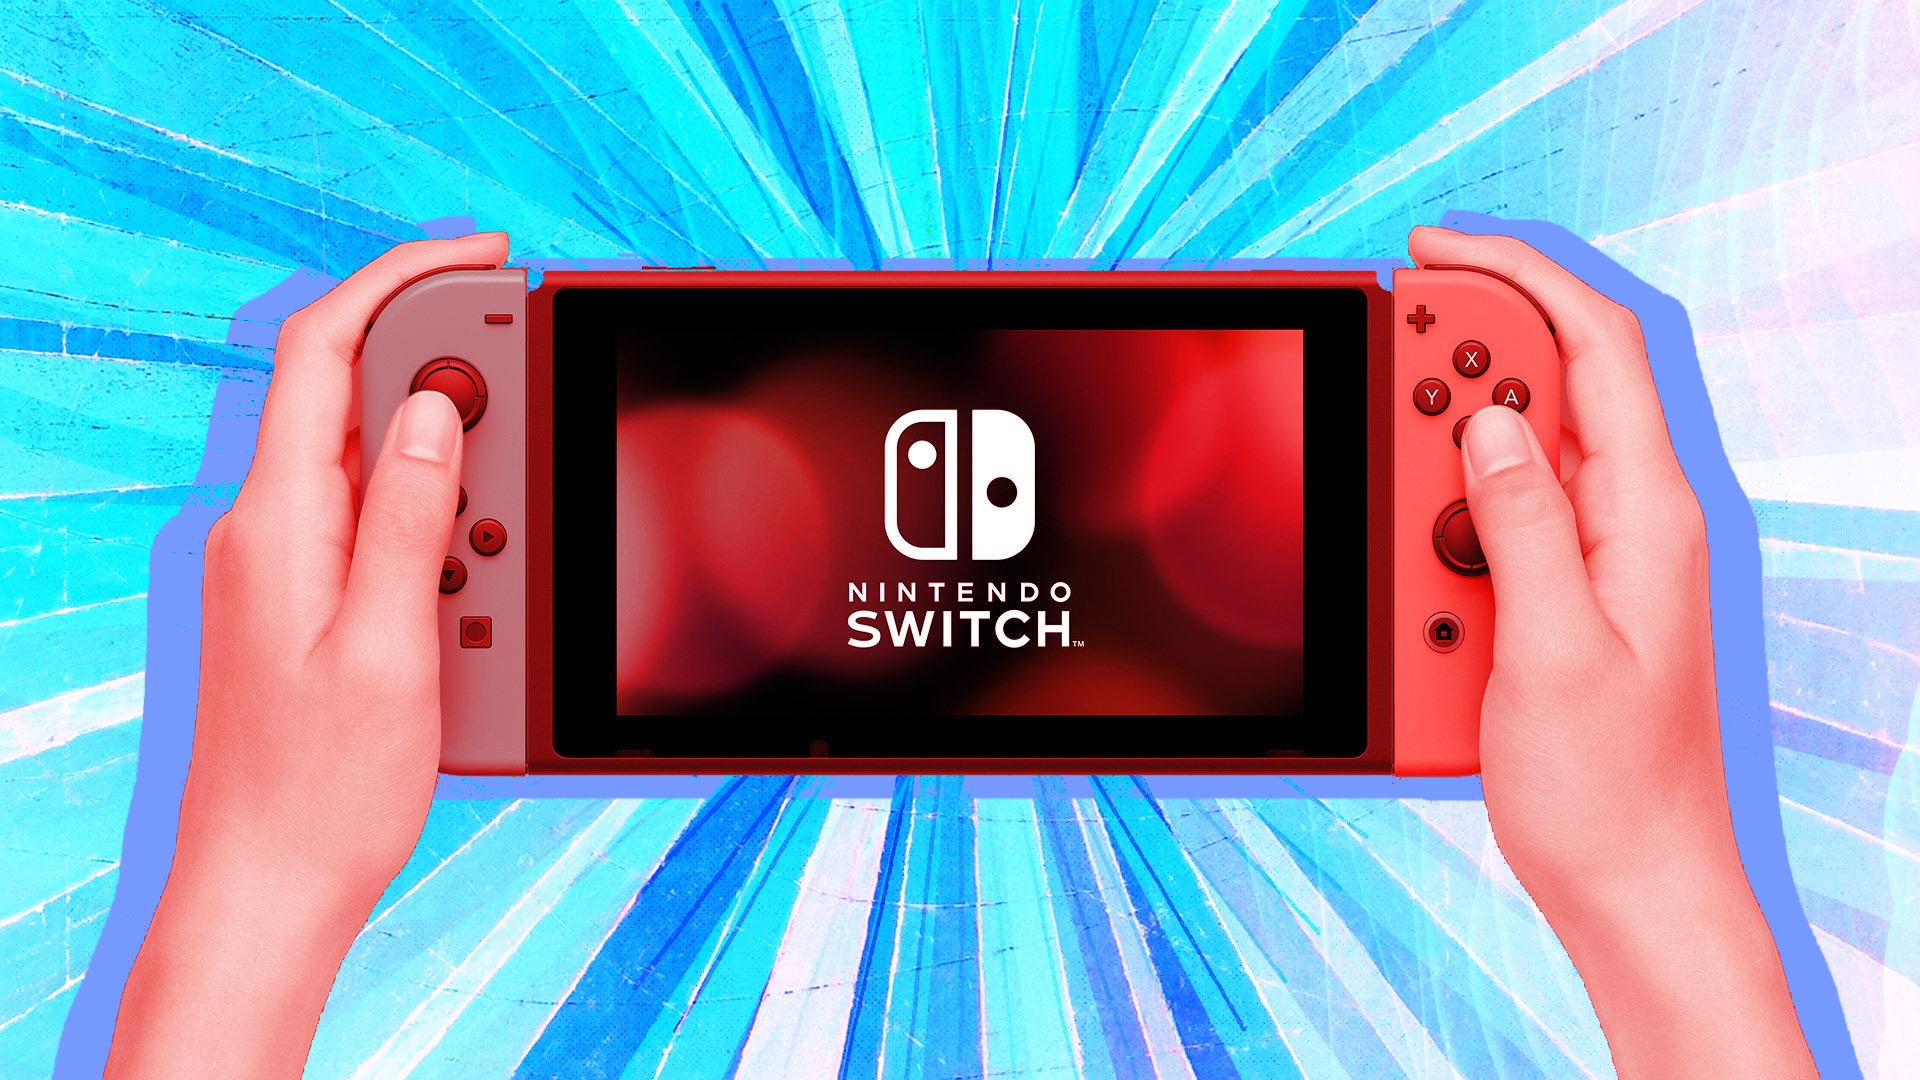 Games Like Roblox For Nintendo Switch Top 10 Kids Games For The Nintendo Switch Superparent